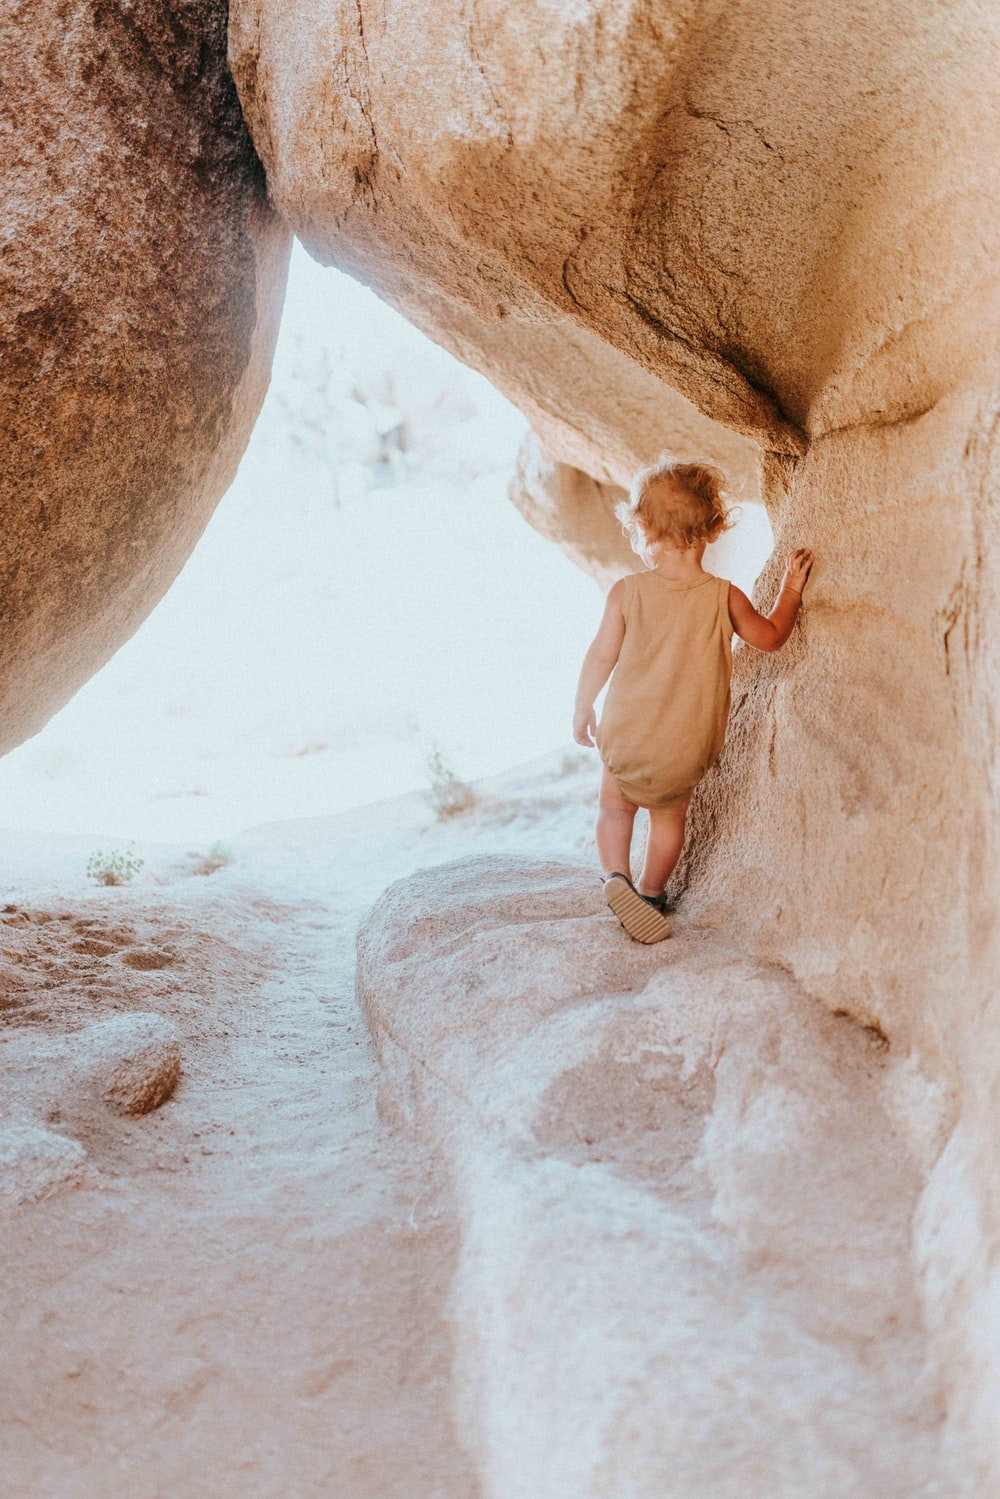 woman in white shirt and brown shorts climbing on brown rock